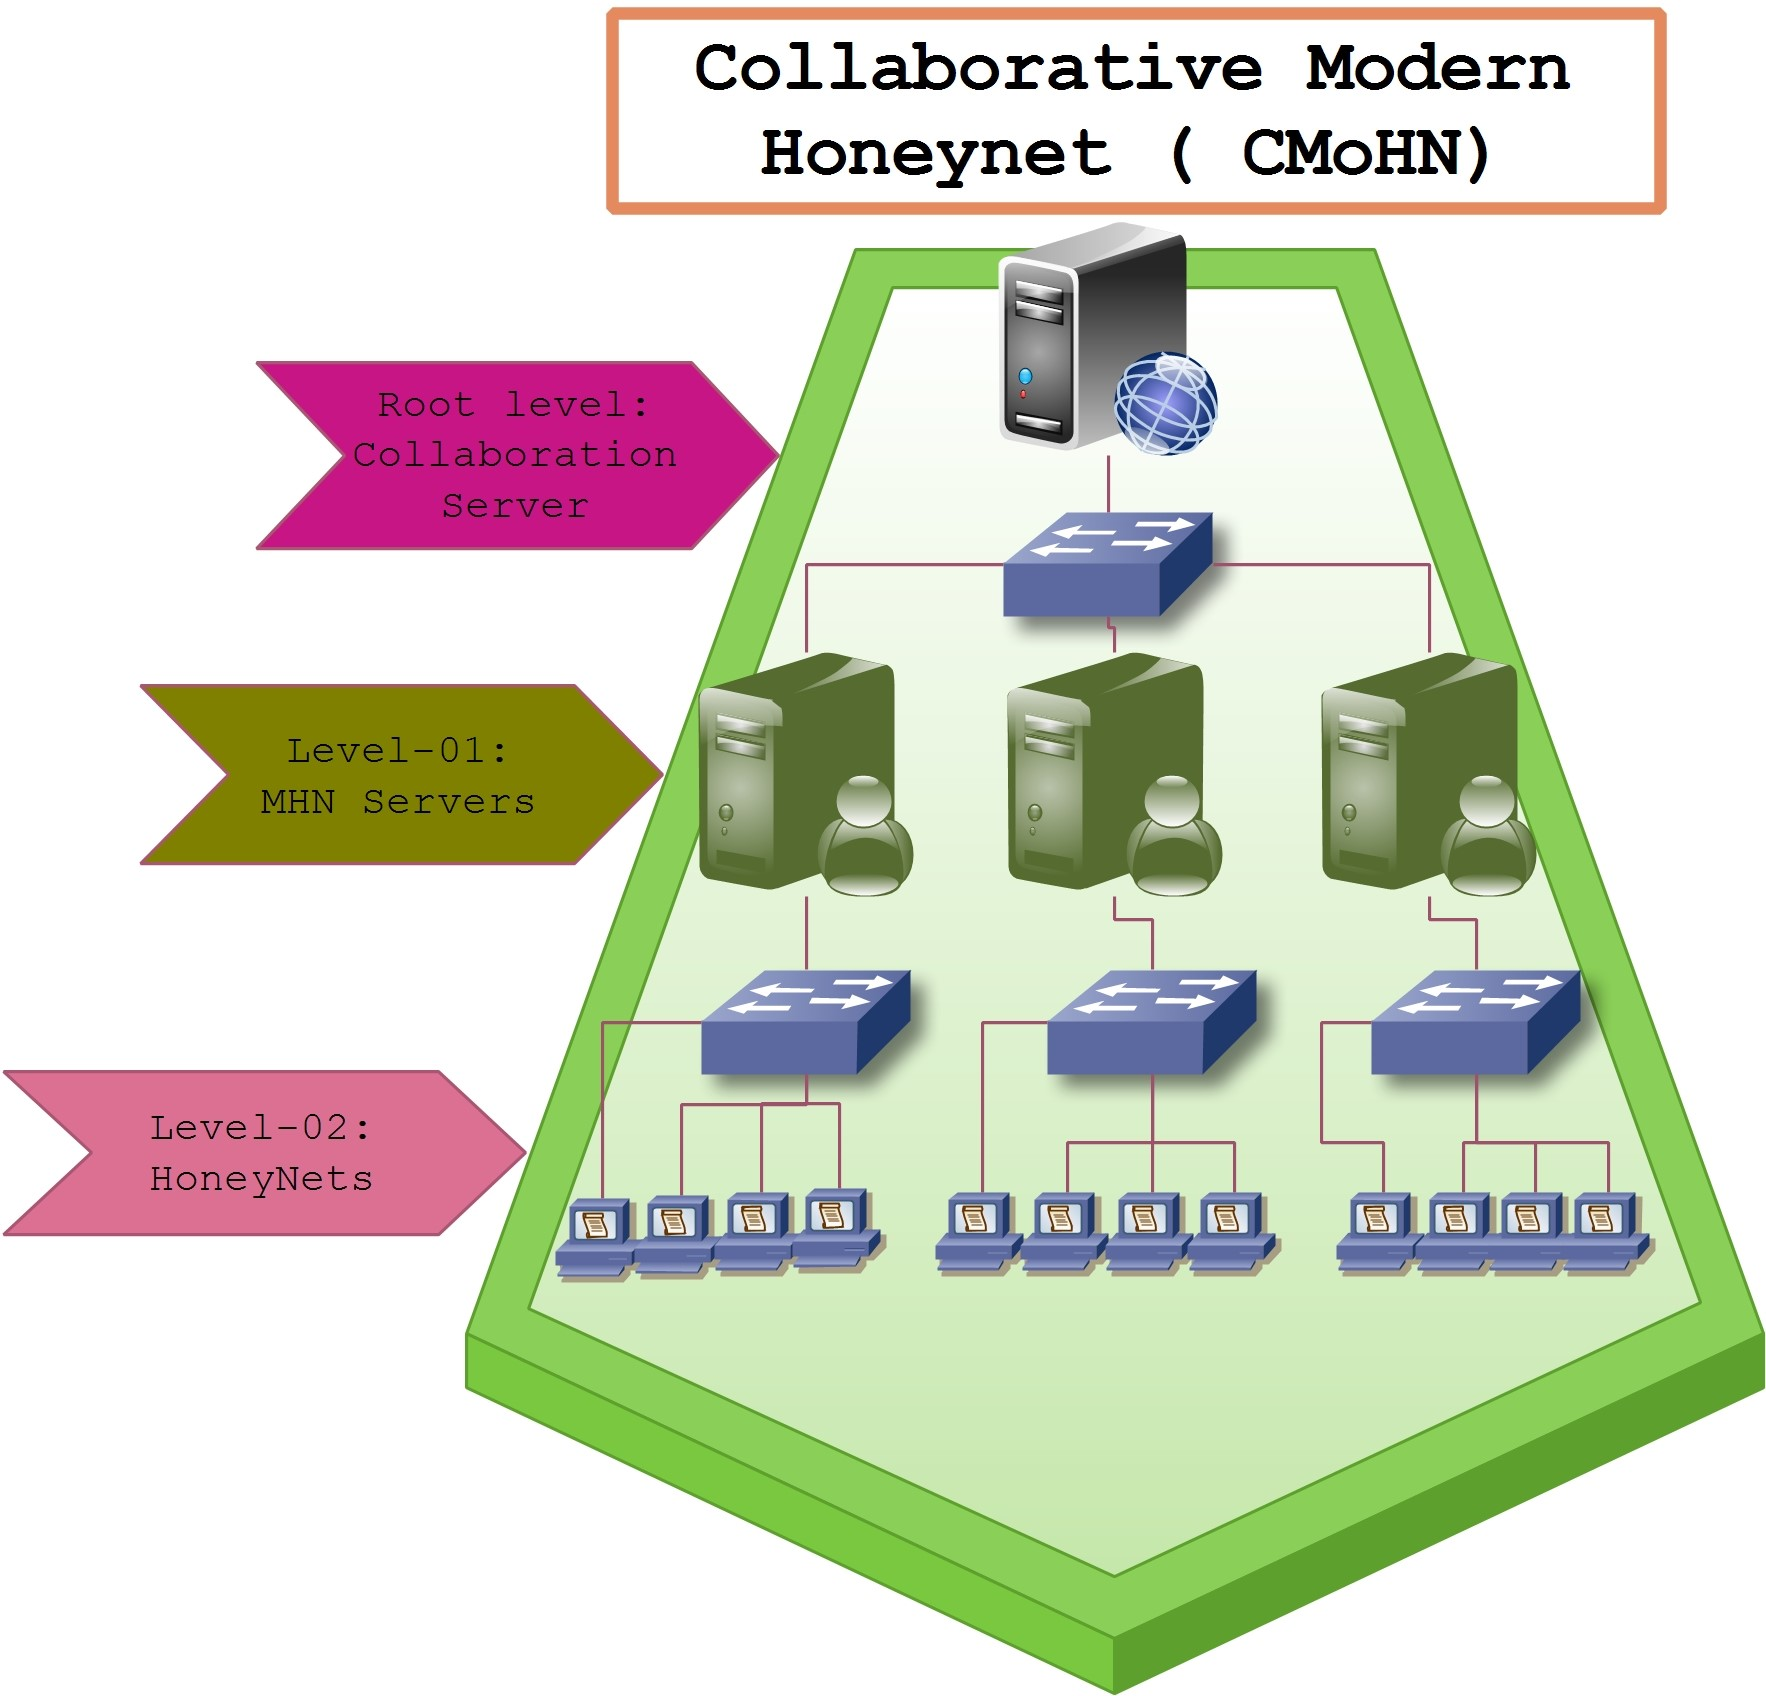 Figure-01: Abstract view of hierarchy of the Collaborative Modern Honeynet (CMoHN)